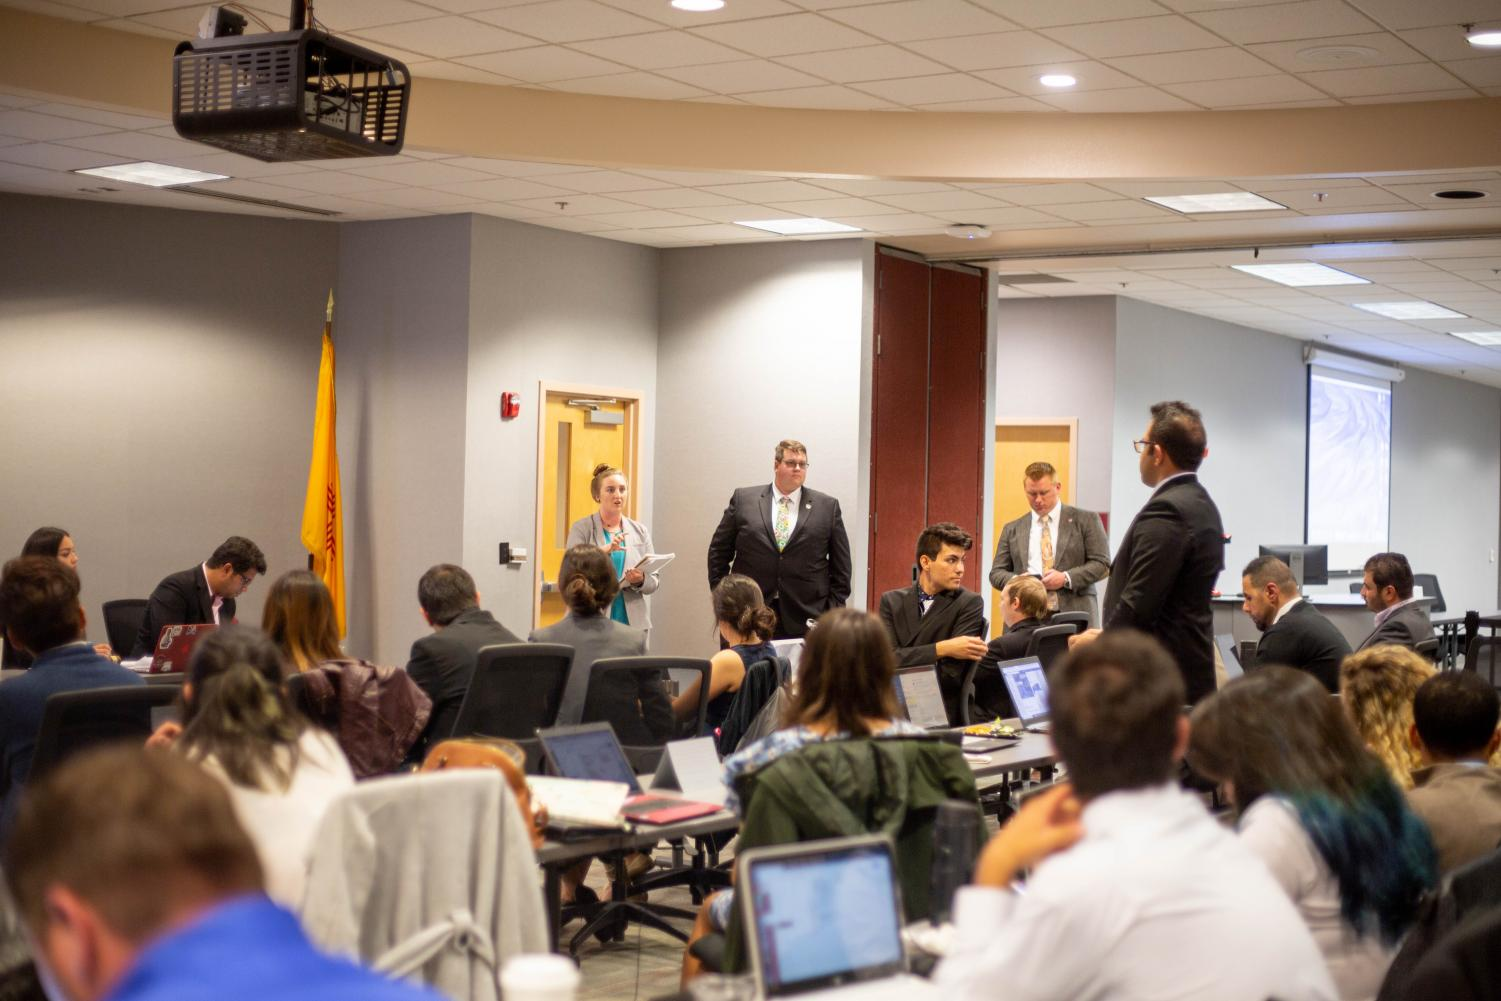 Graduate students ask administration for more transparency with a resolution introduced at an ASNMSU meeting Nov. 1.